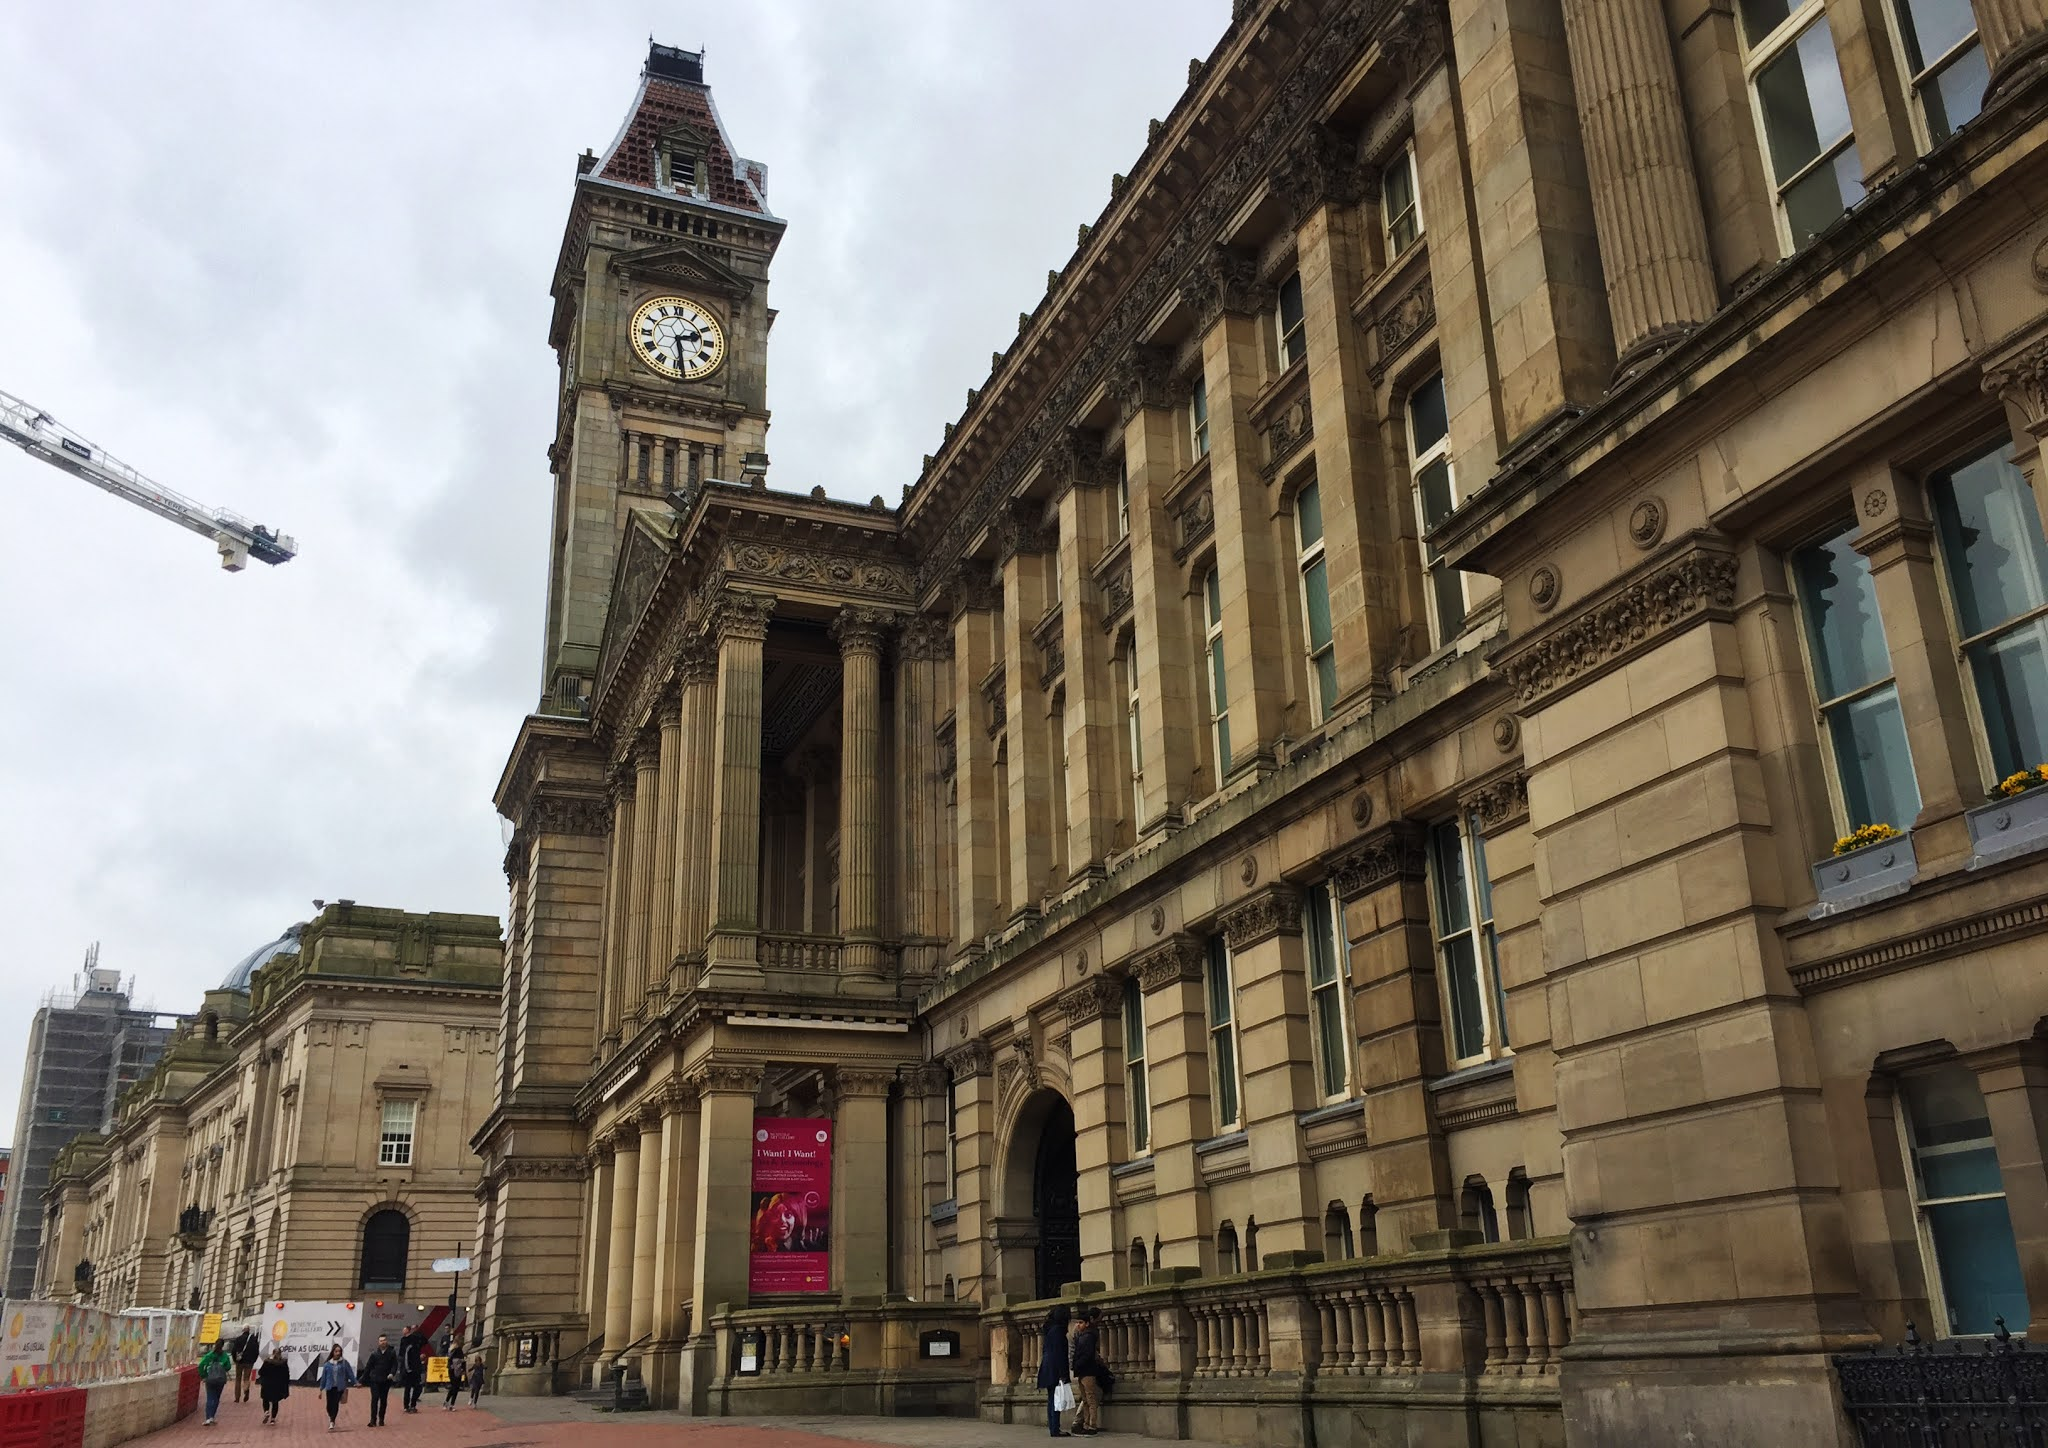 The entrance to Birmingham Museum and Art Gallery